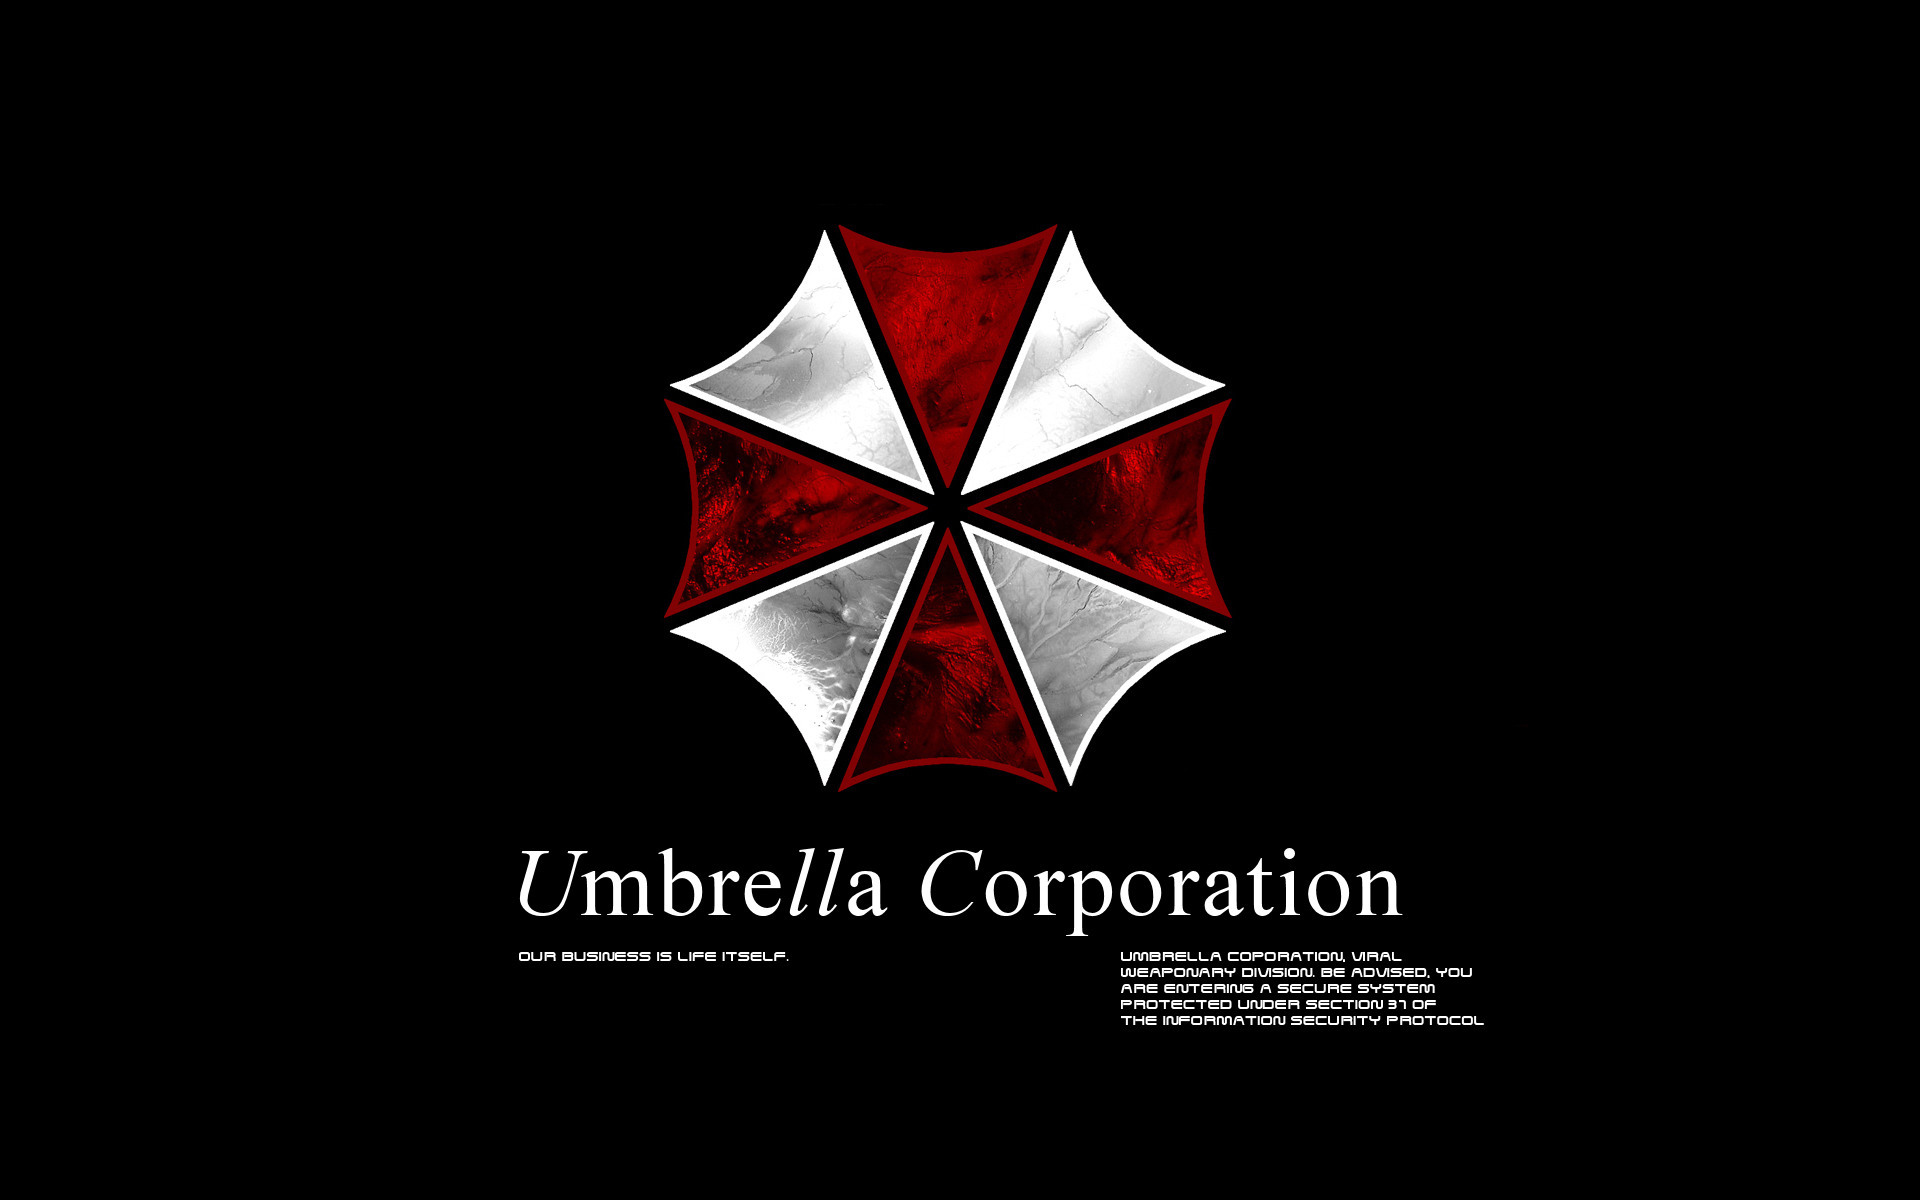 original wallpaper download: Umbrella Corporation Resident Evil - 1920x1200